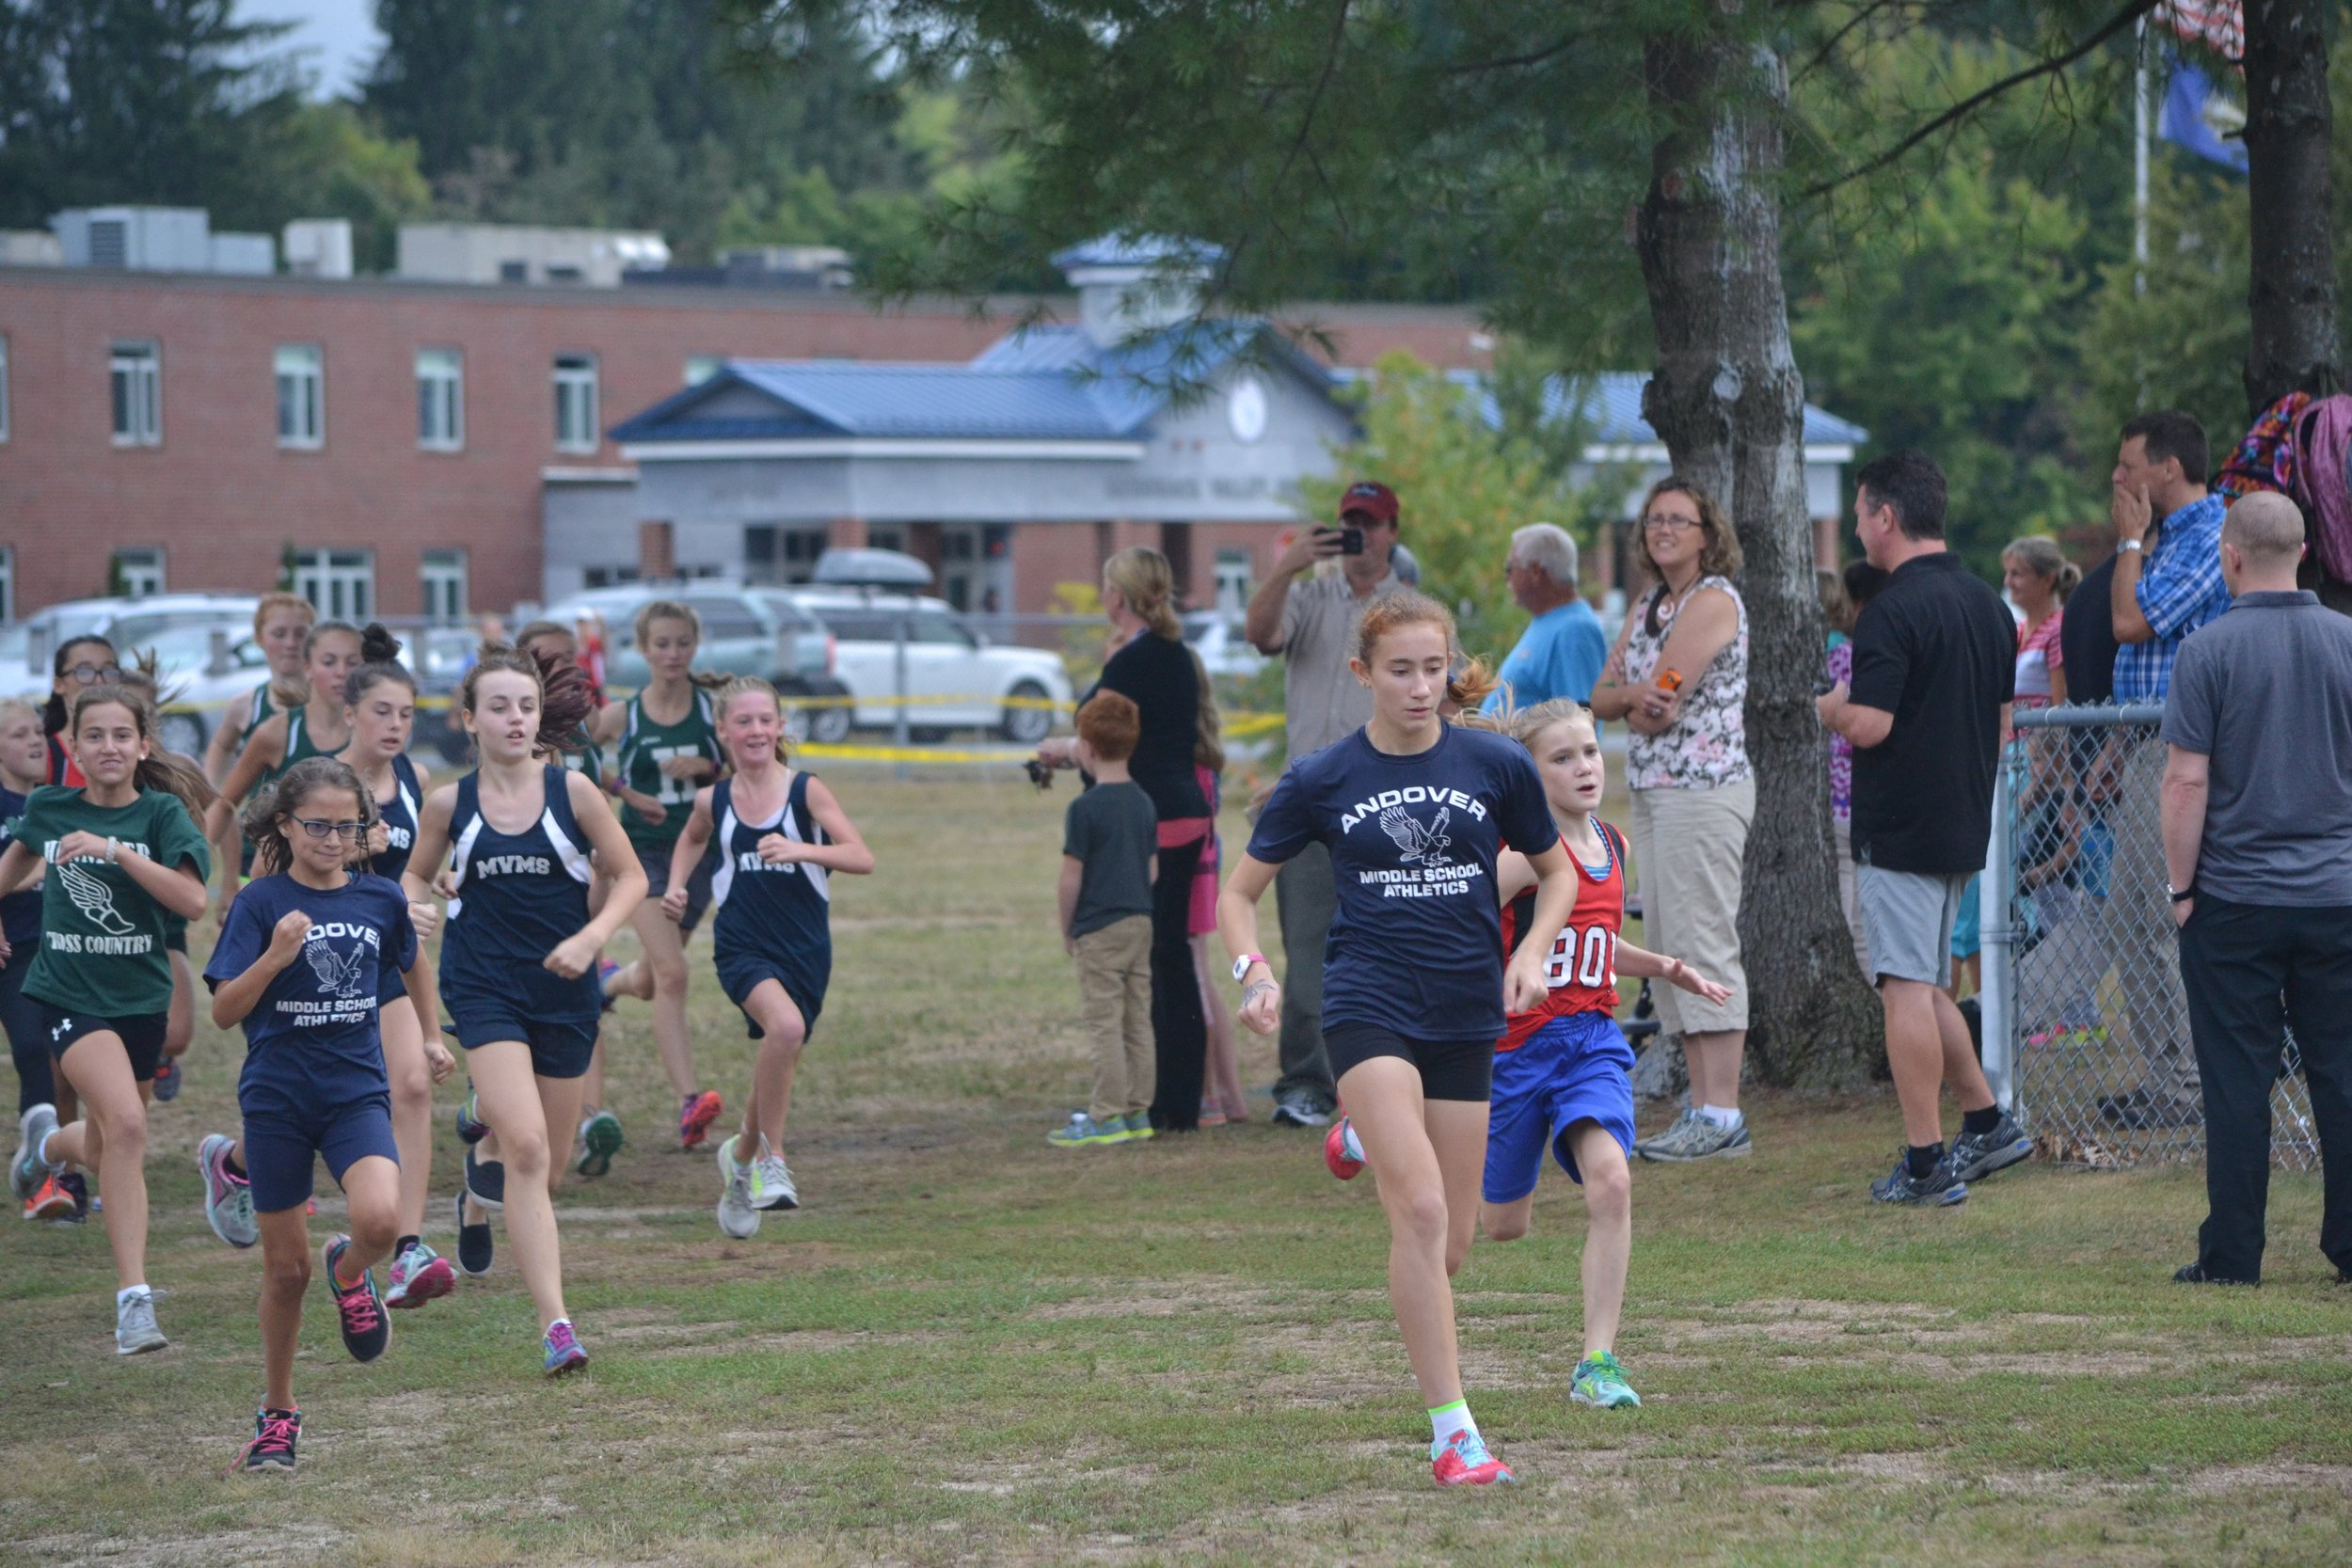 Future teammates Sophia R. and Sophia R. lead their Andover and MV teams in the girls race.